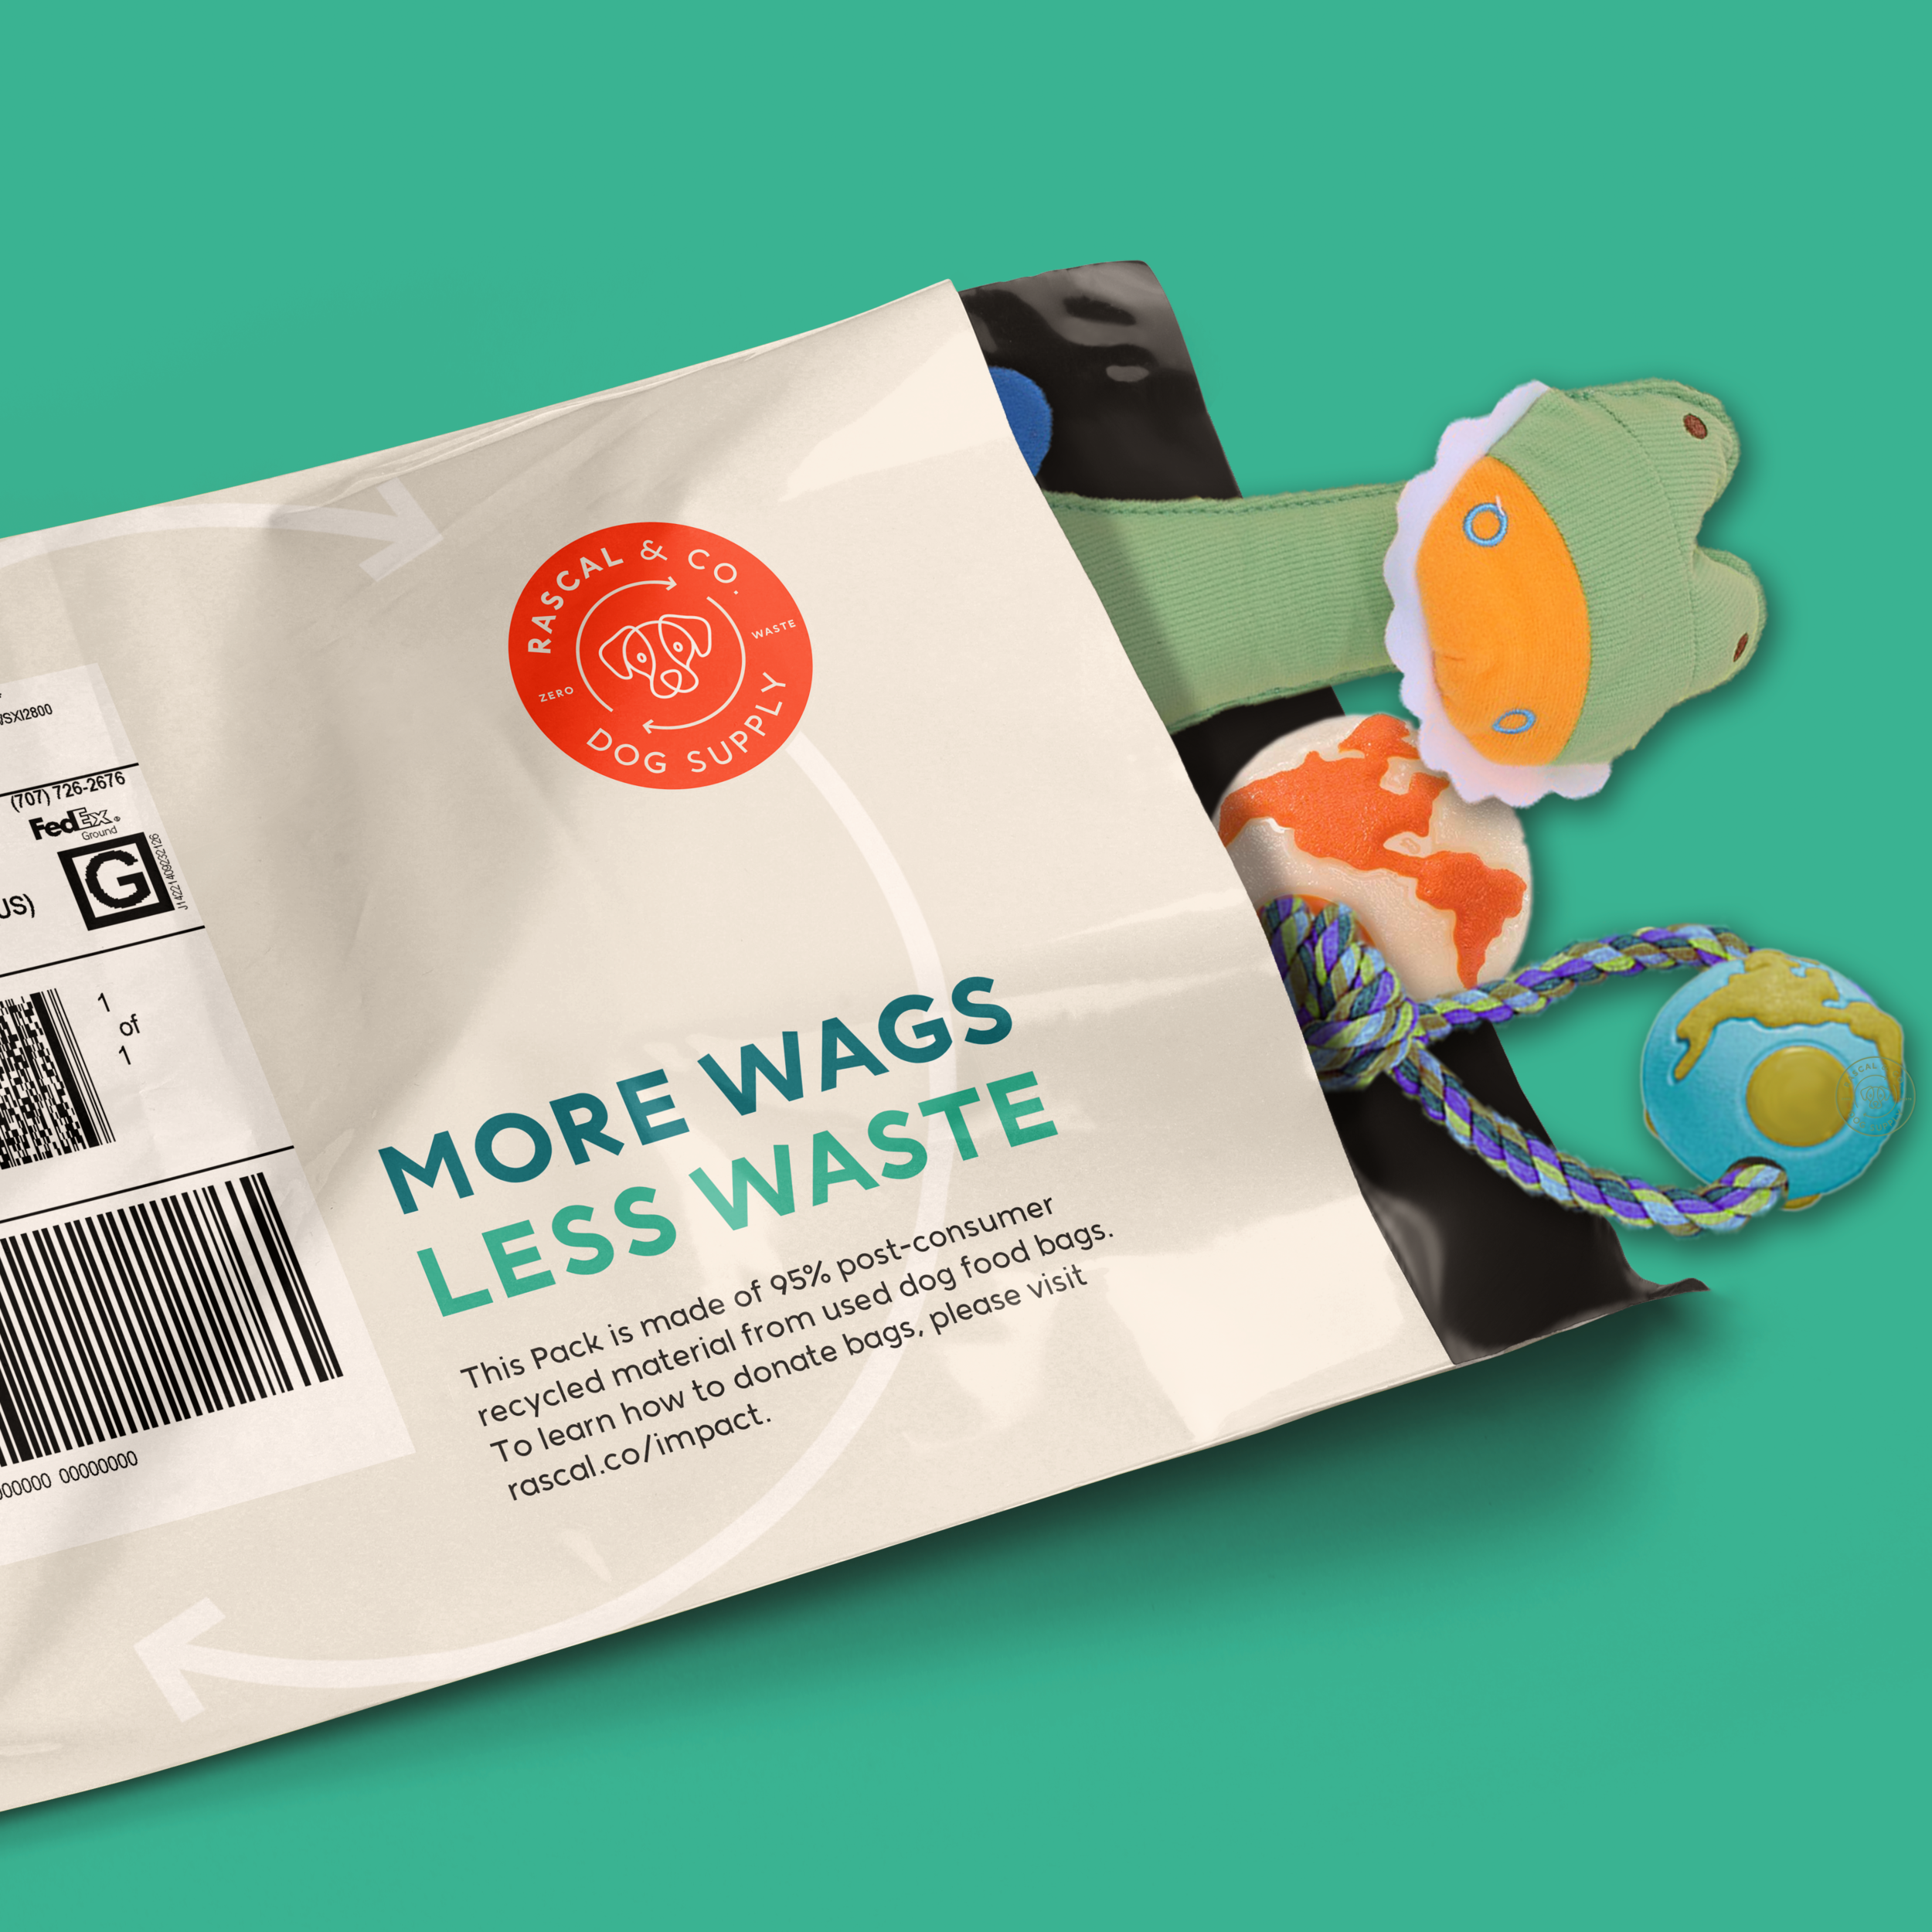 In an effort to contradict the wasteful packaging trends in today's direct-to-consumer market, each Rascal Pack is made of post-consumer recycled dog food bags and designed for re-use.